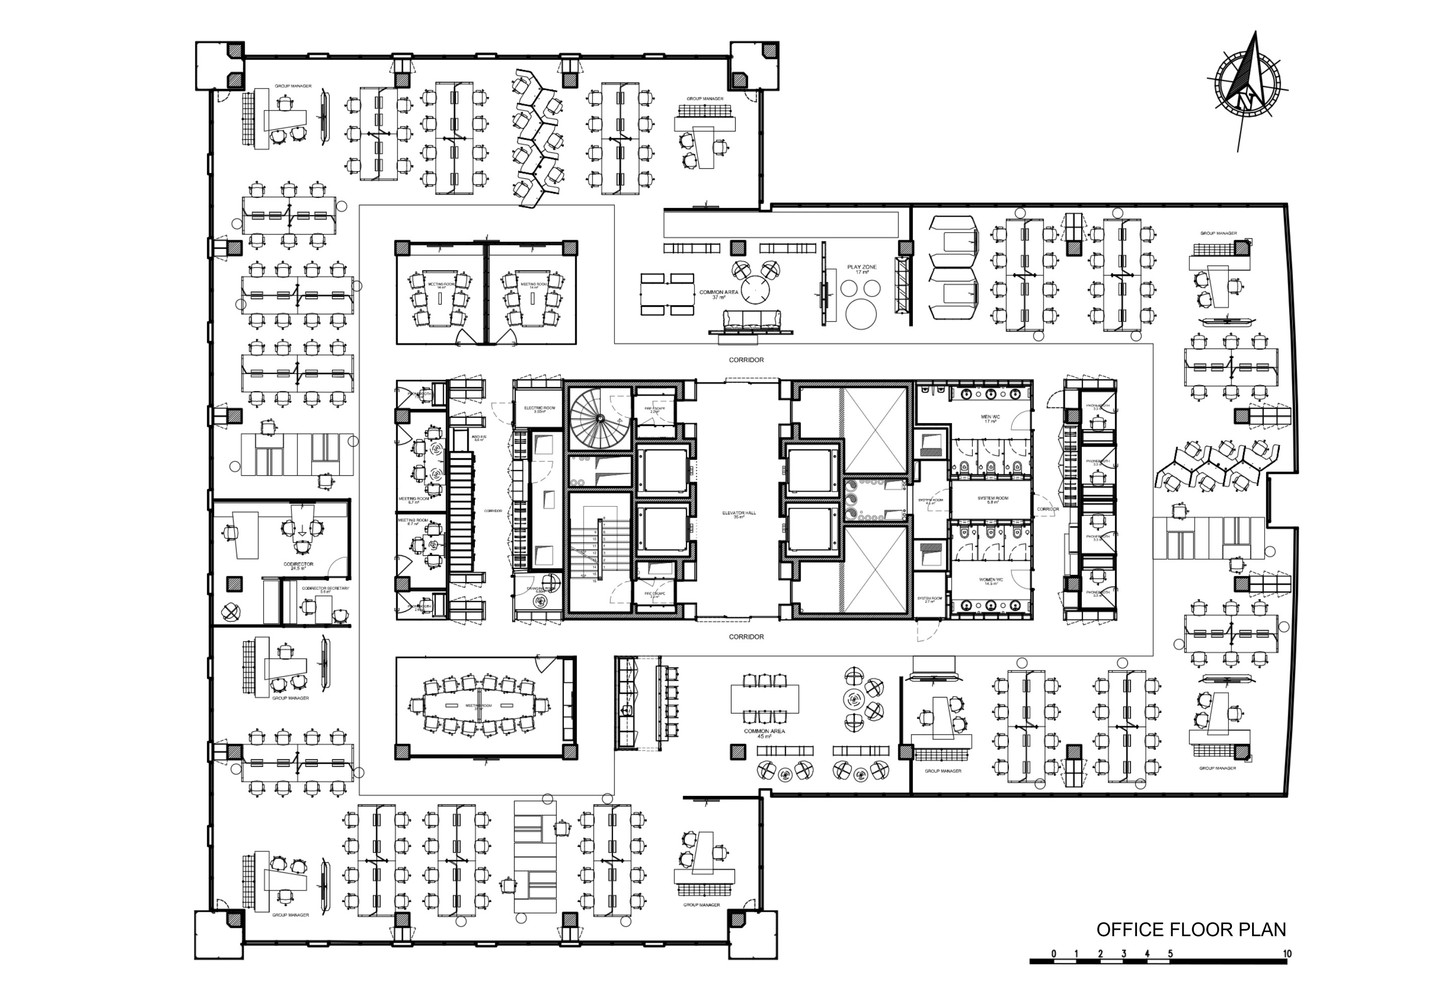 Ing bank turkey hqoffice floor plan